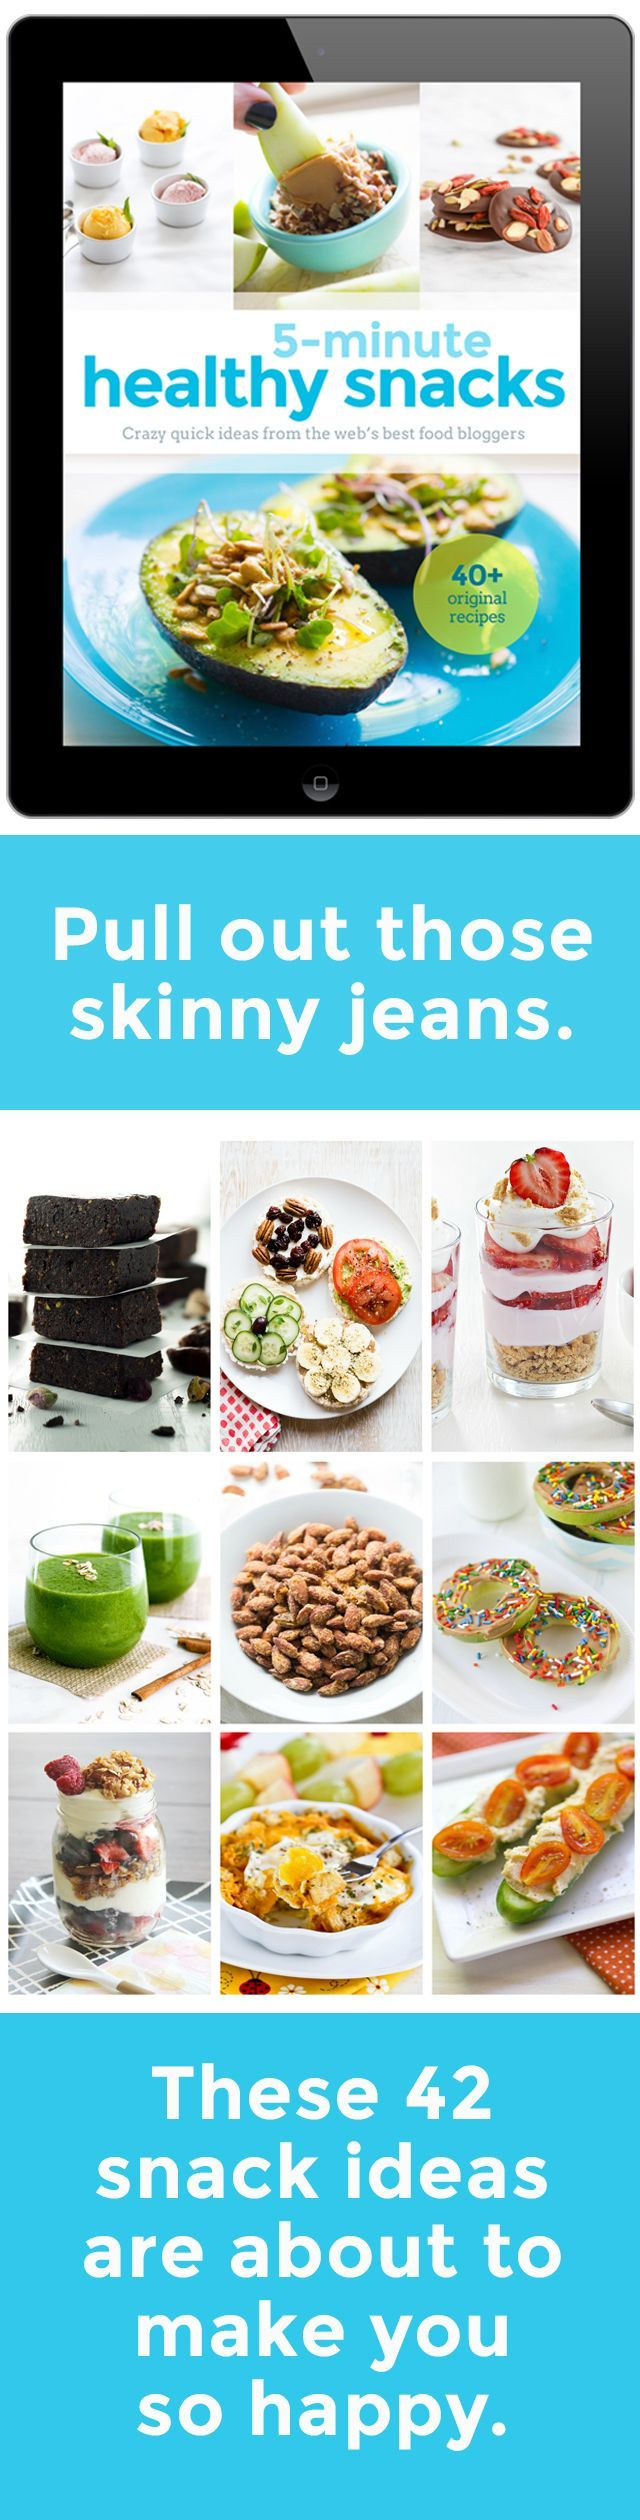 Pull out those skinny jeans because these 5 Minute Recipes - 5 Minute Healthy Snacks is your key to your weight management success!  http://www.flavoursandfrosting.com/5-minute-healthy-snacks